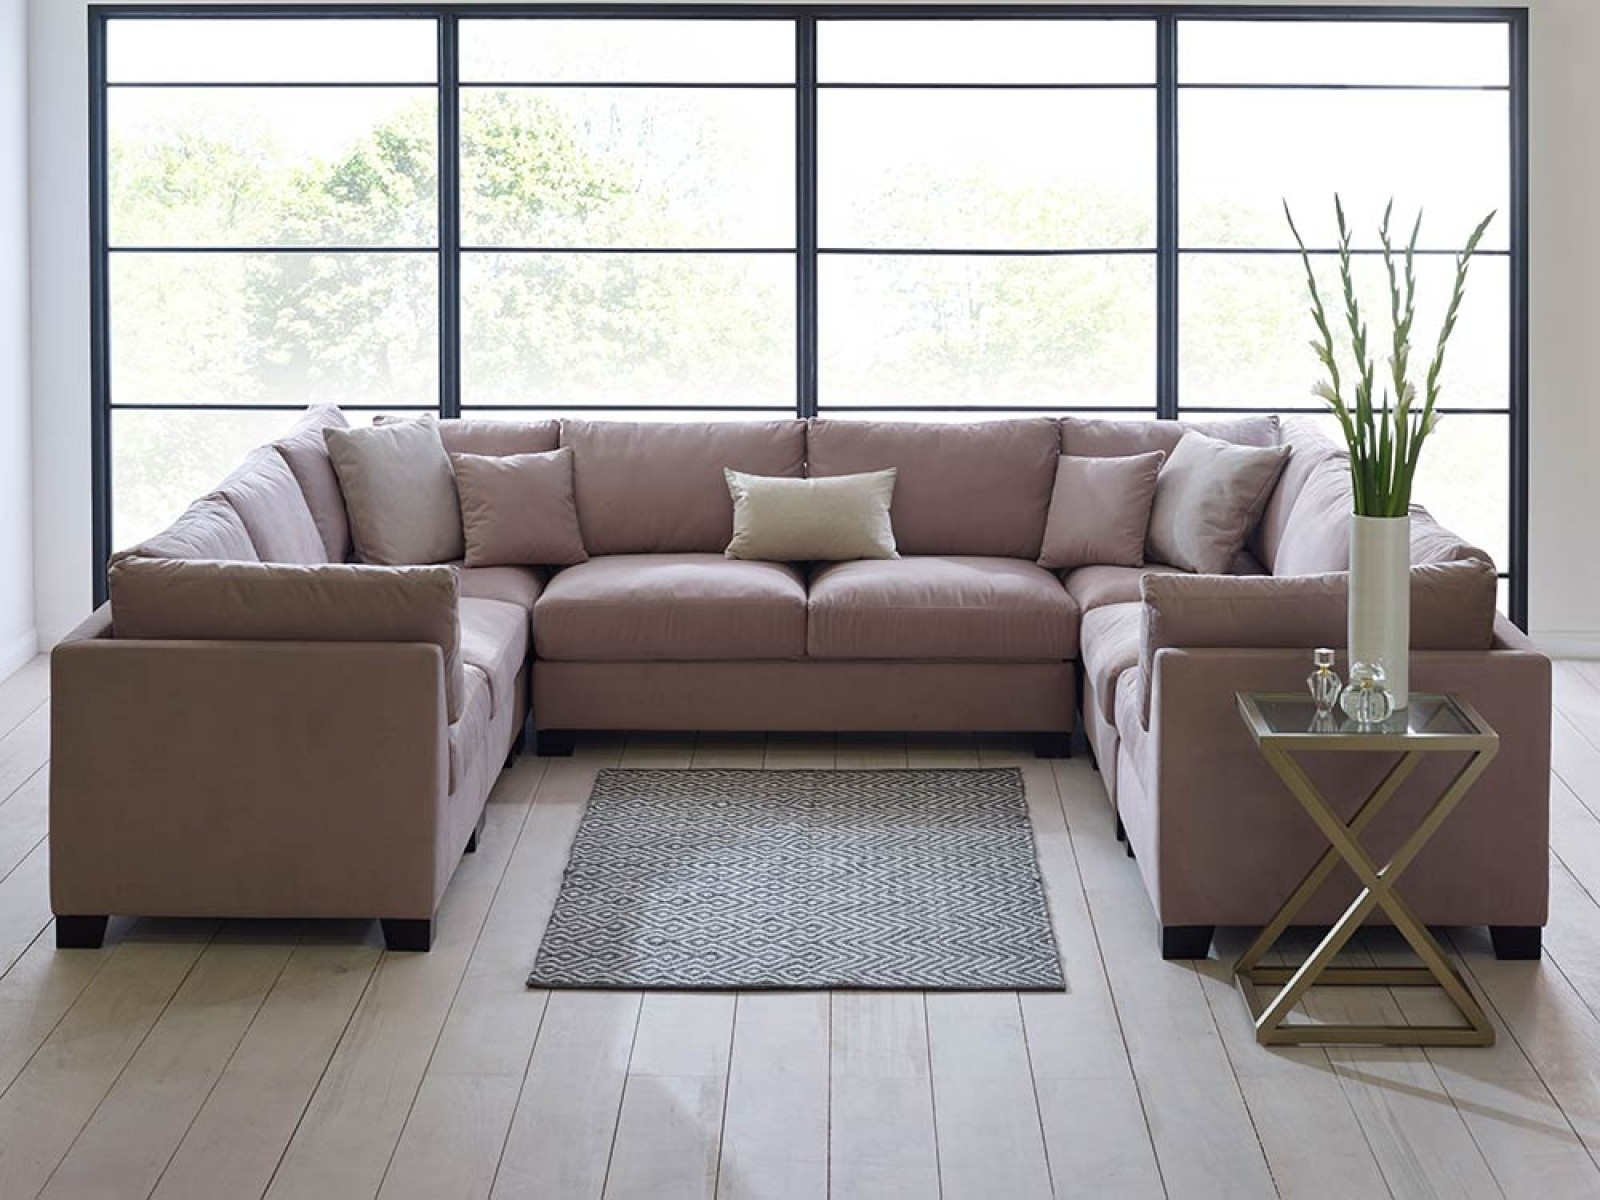 Small U Shaped Sectional Sofas within Well-known U Shaped Sofa - Google Search